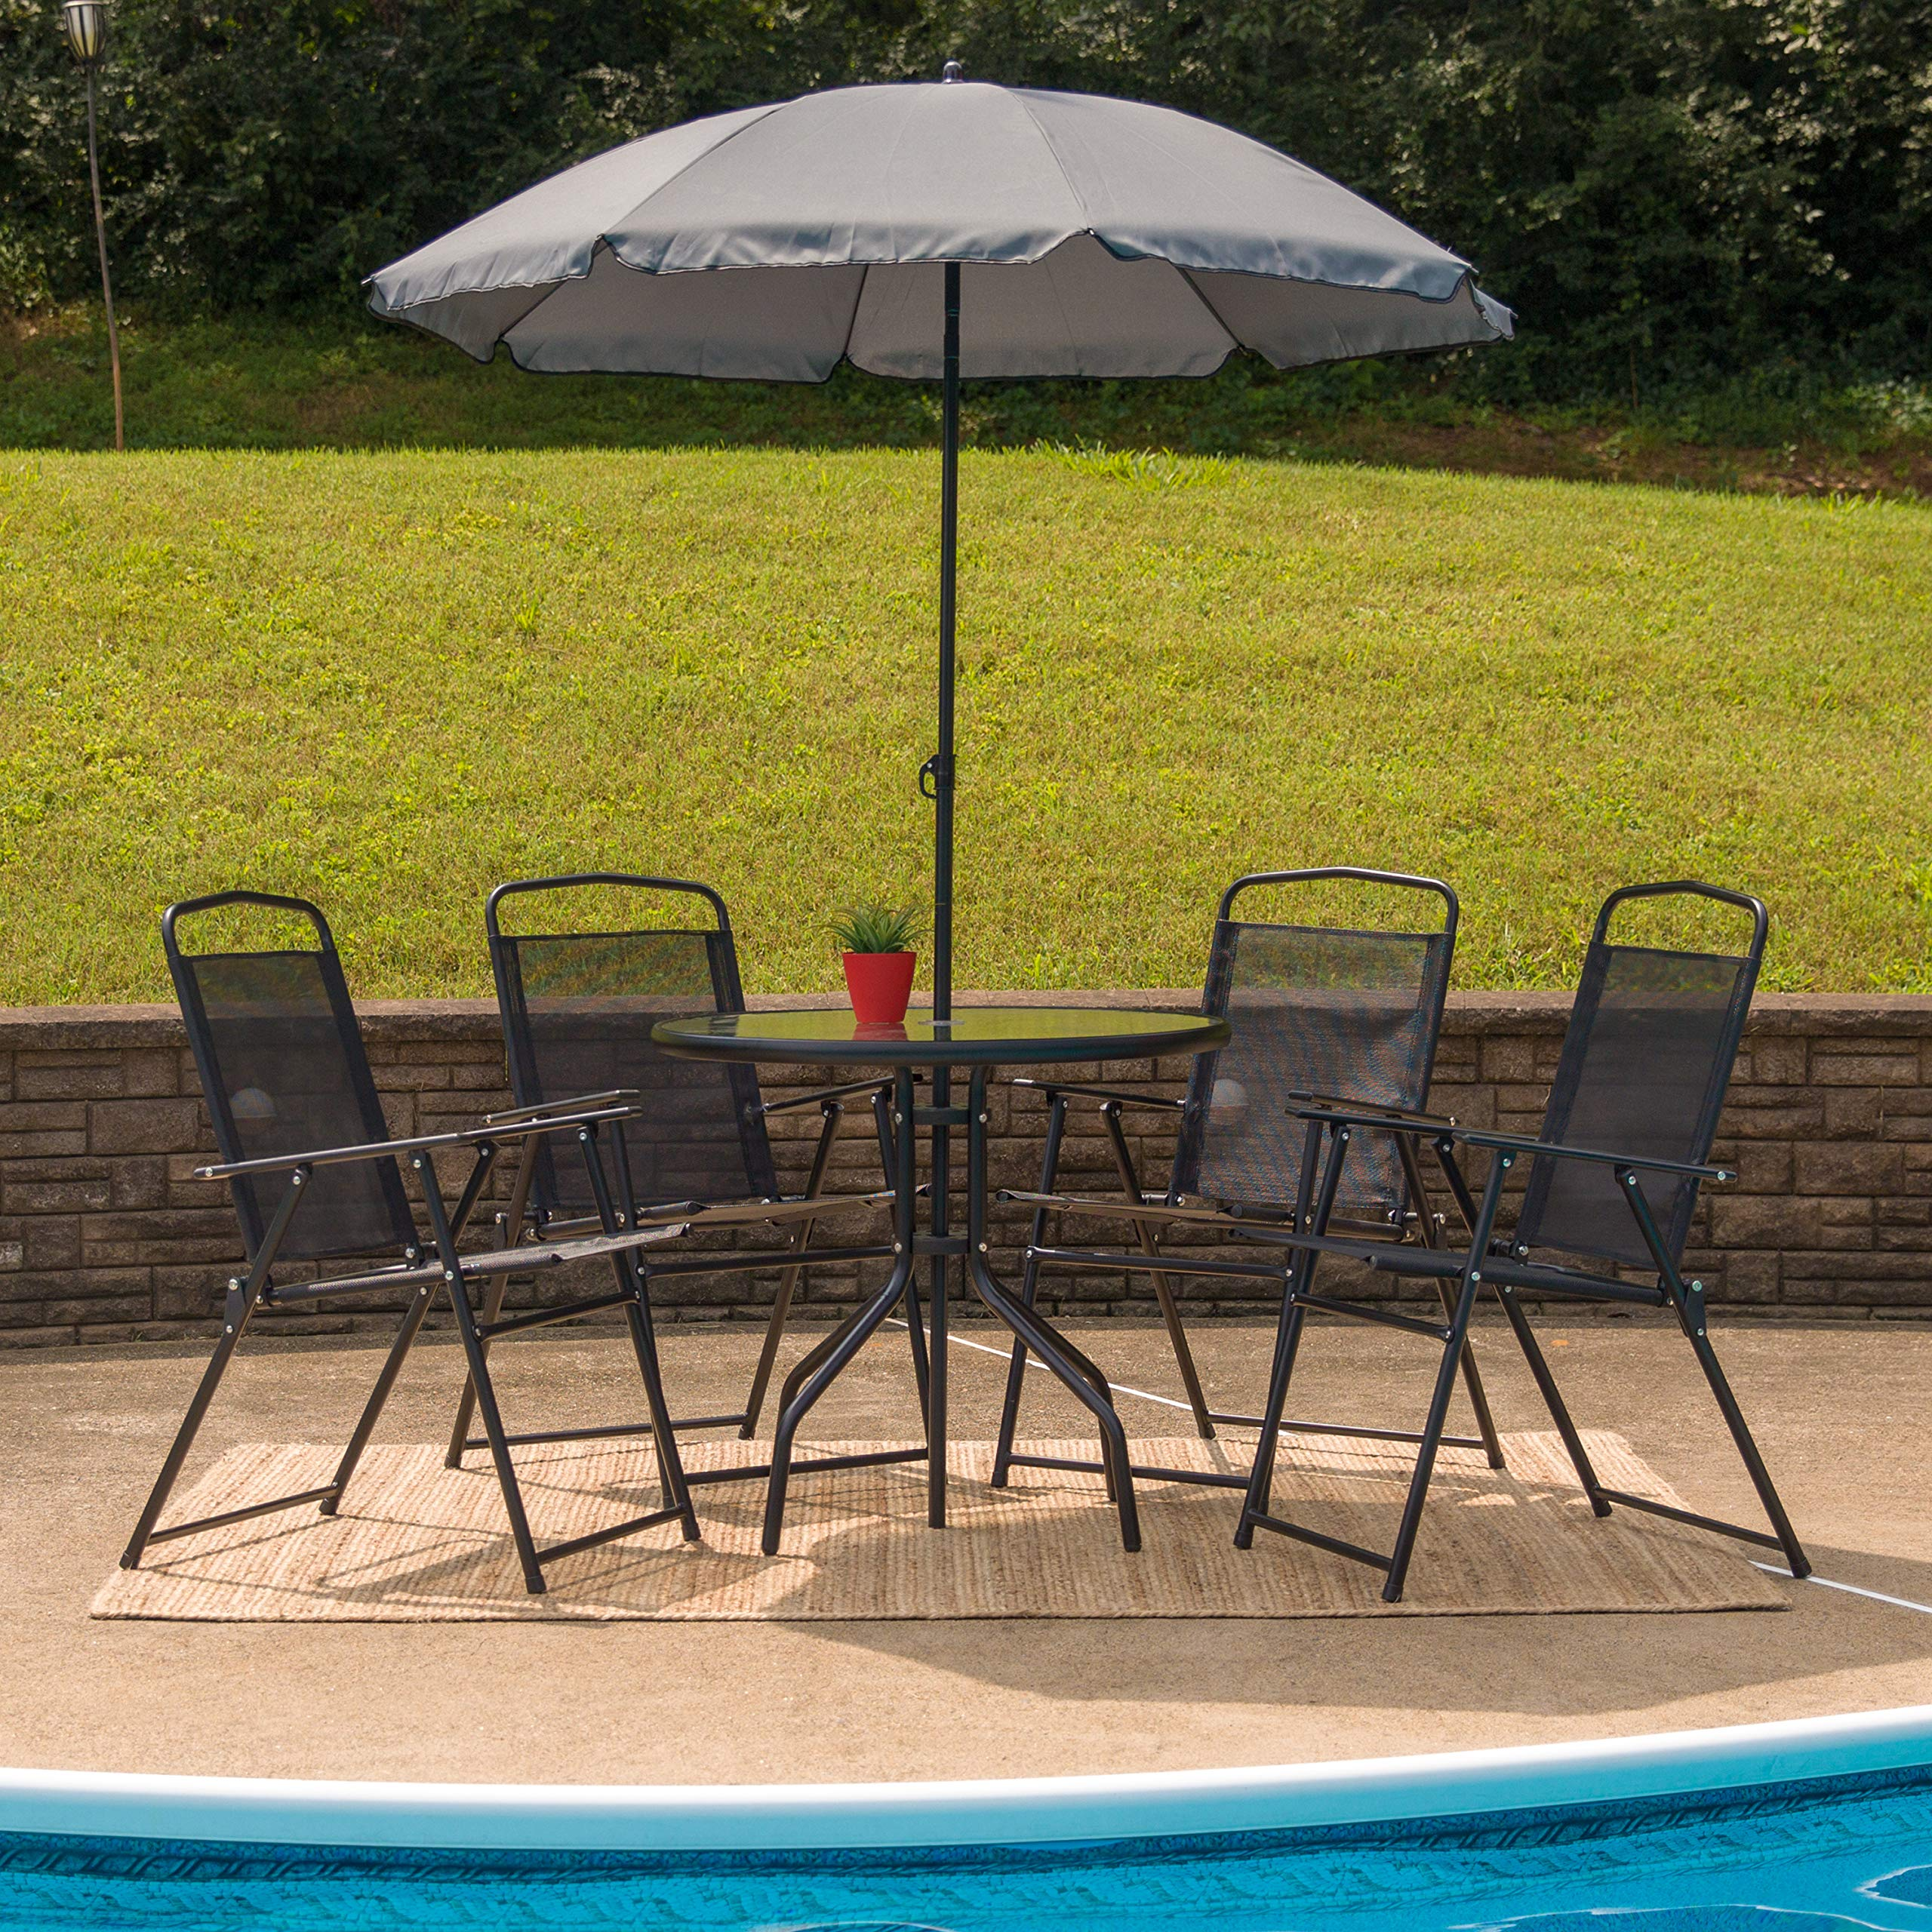 Flash Furniture Nantucket 6 Piece Patio Garden Set with Table, Umbrella and 4 Folding Chairs by Flash Furniture (Image #6)